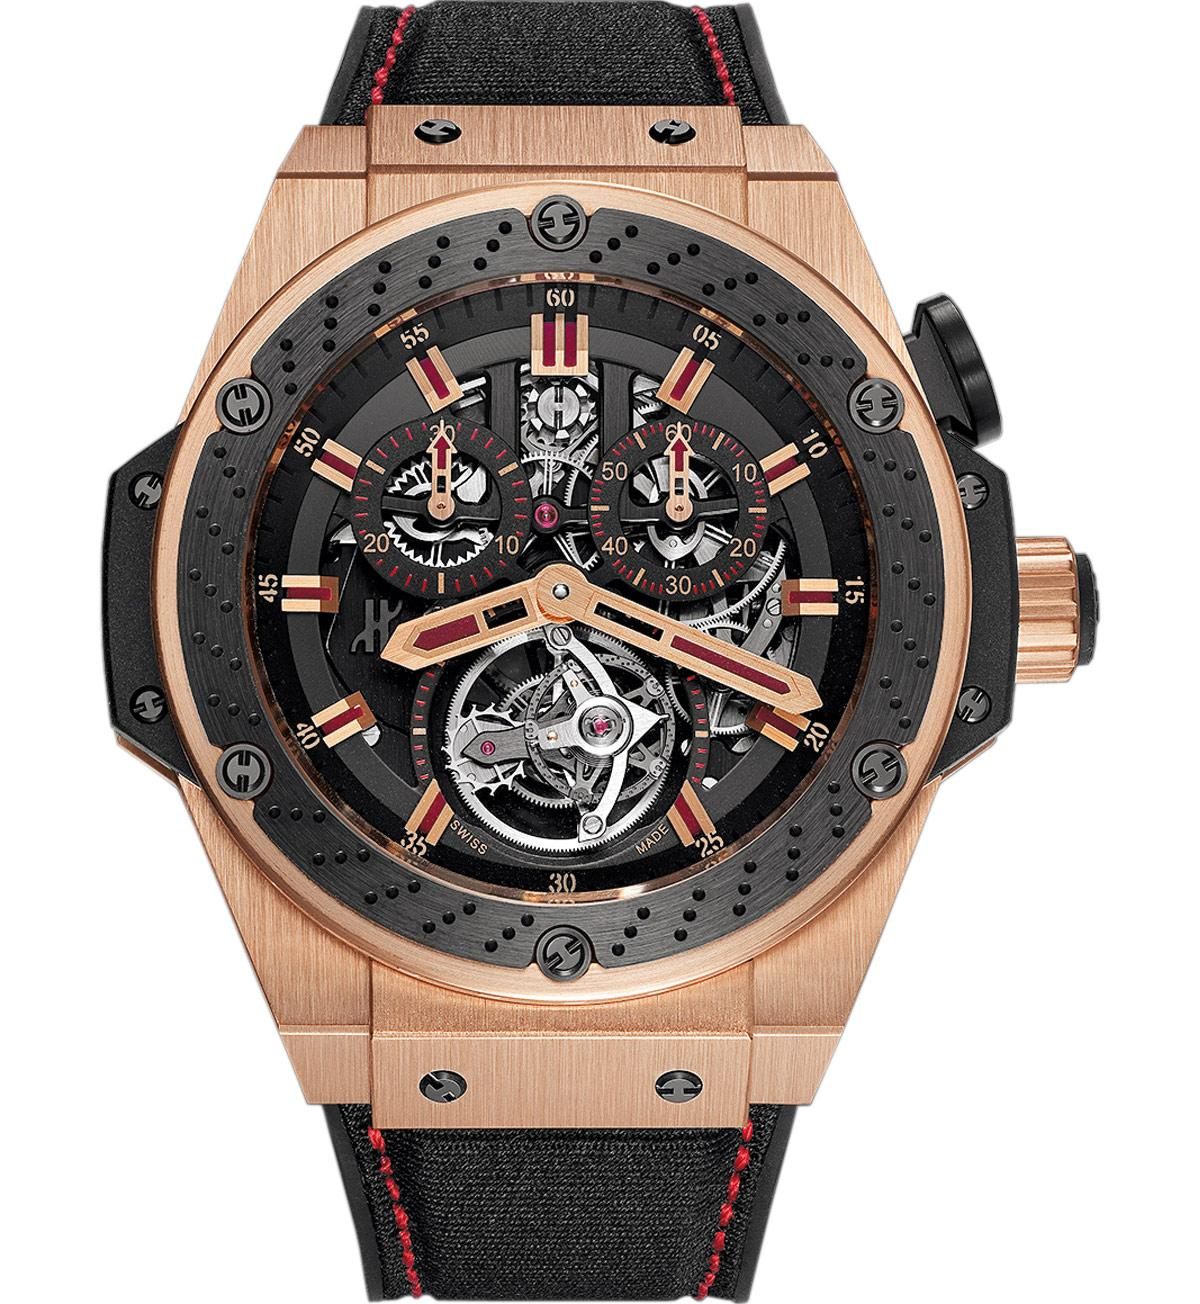 707.OM.1138.NR.FMO10 Hublot King Power Tourbillon F1 Watch